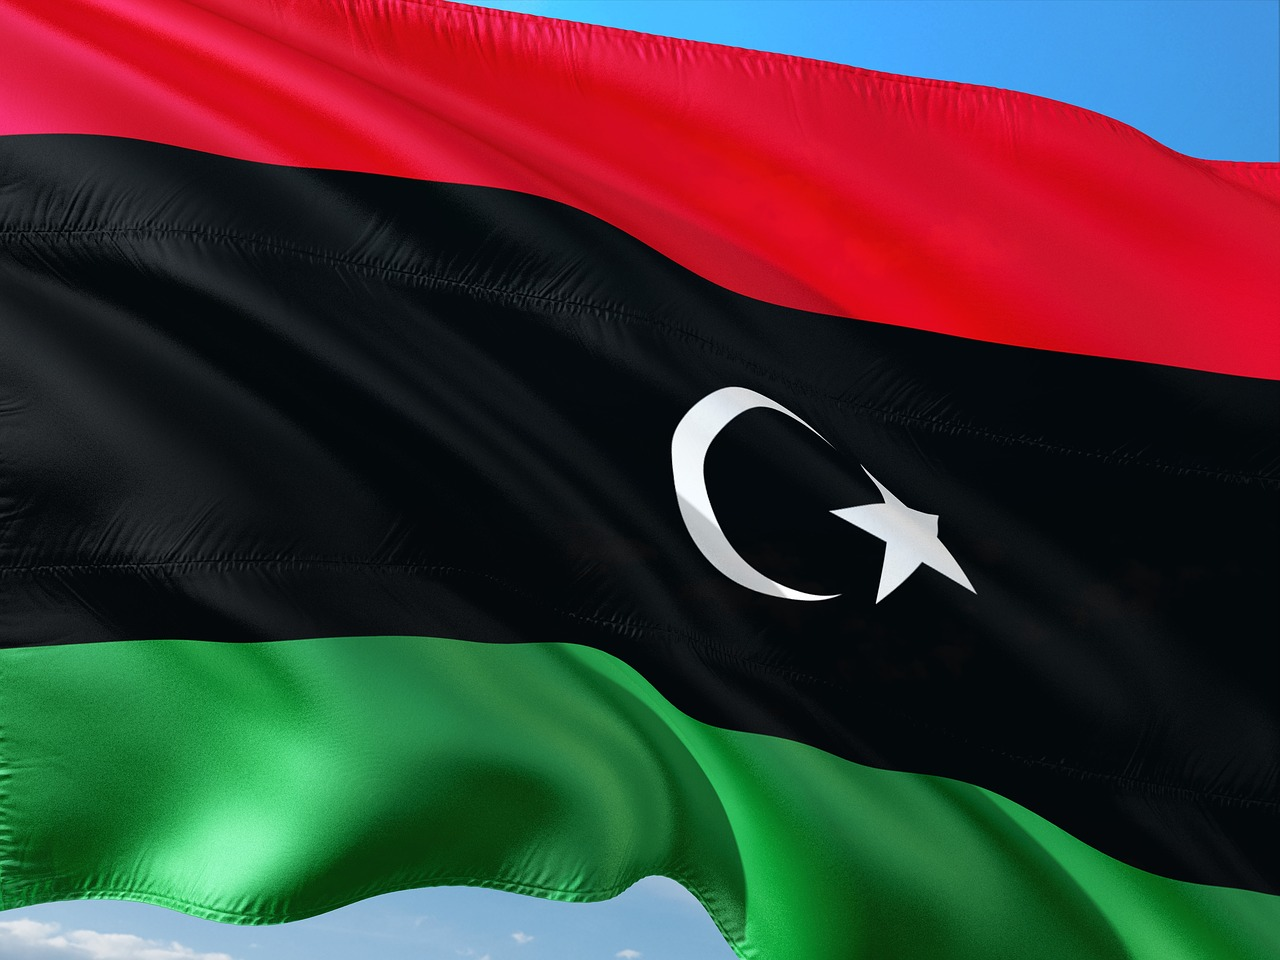 Senior UN official demands compliance with Libya arms embargo and accountability for violations